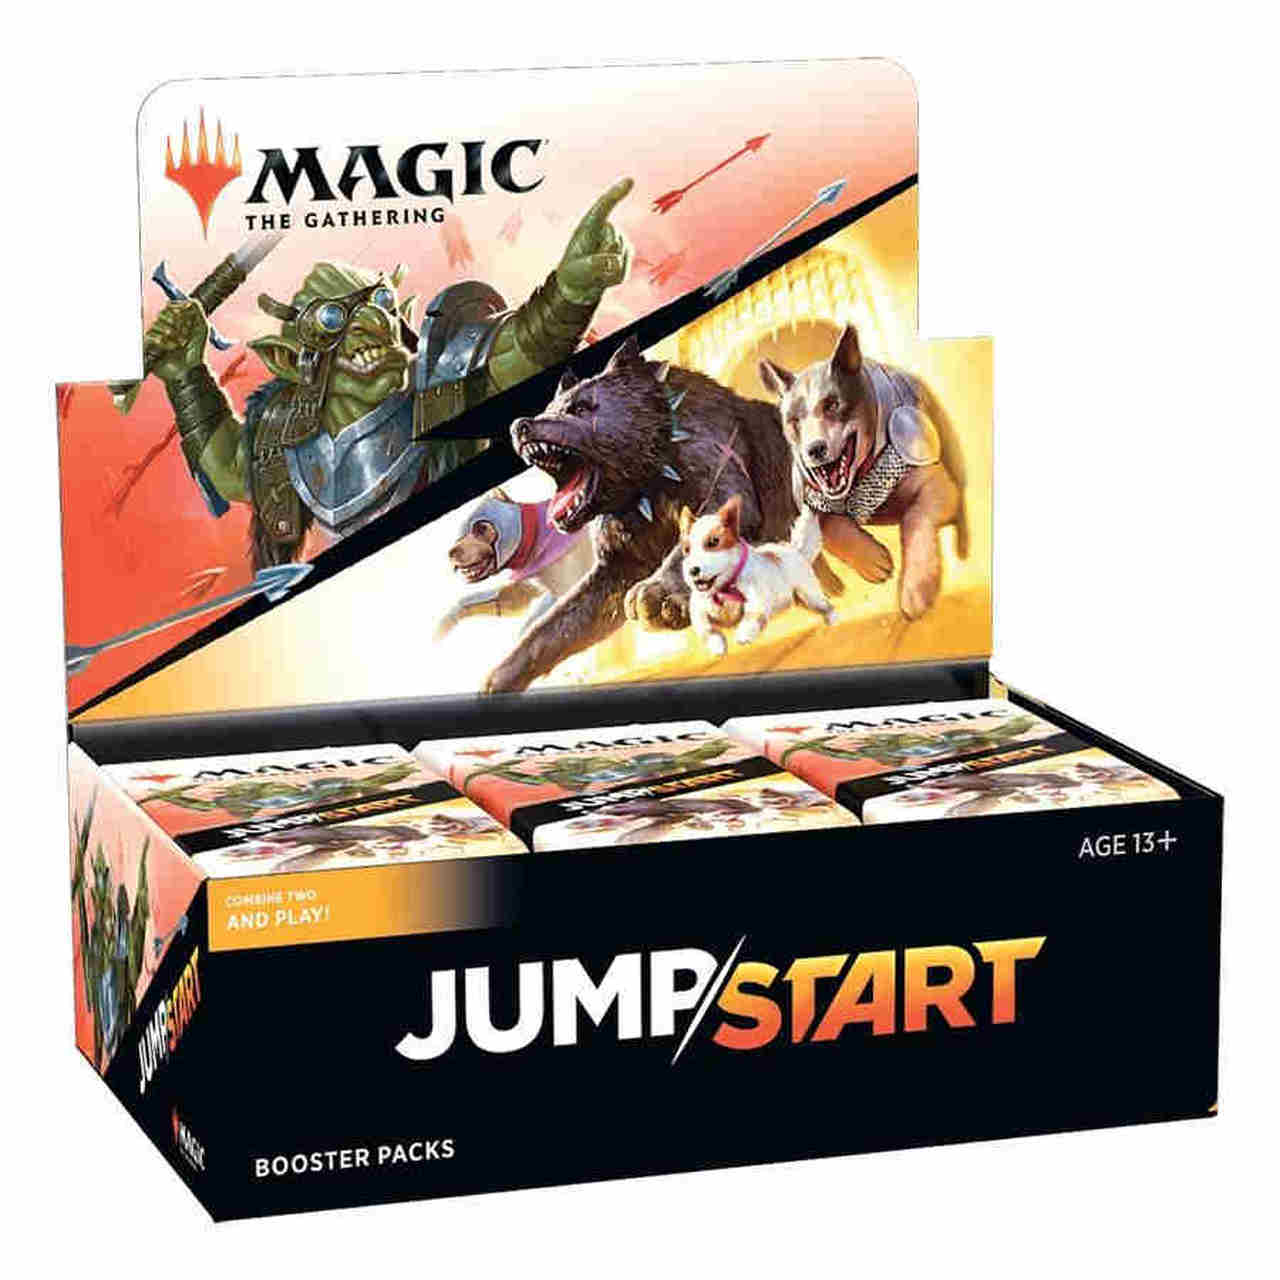 Magic: The Gathering - Jumpstart Booster Box | Emerald Dragon Games